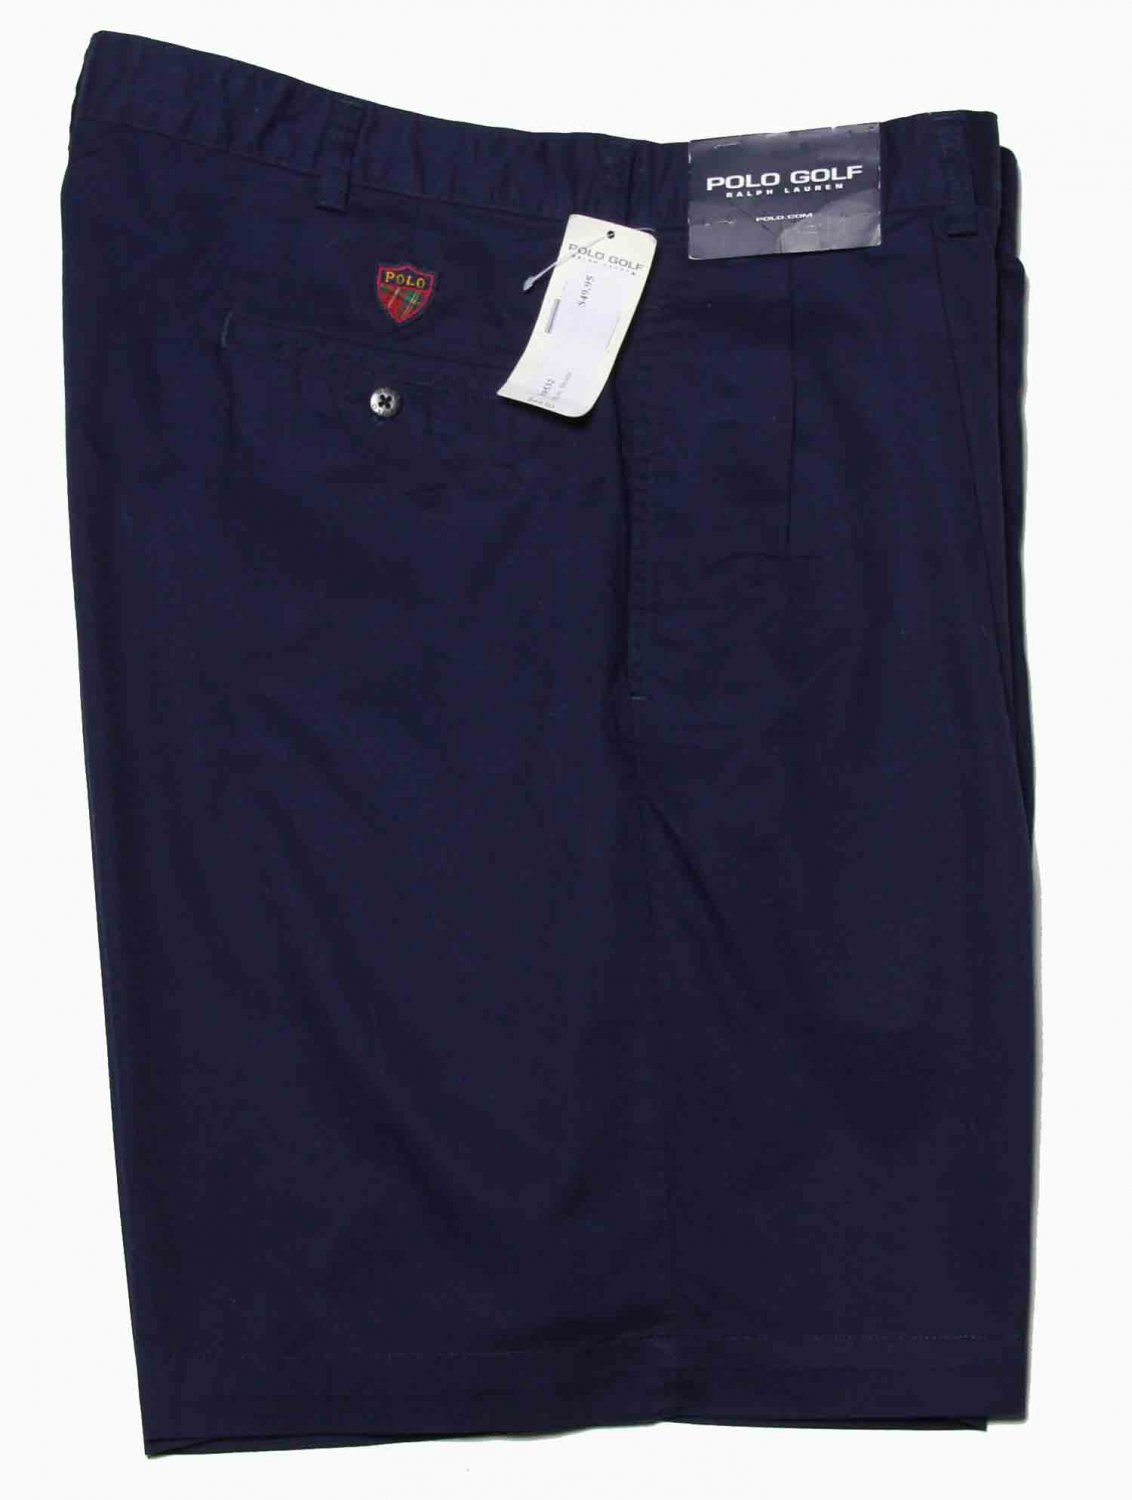 Men's Ralph Lauren Polo Golf Shorts Navy Blue Size 35